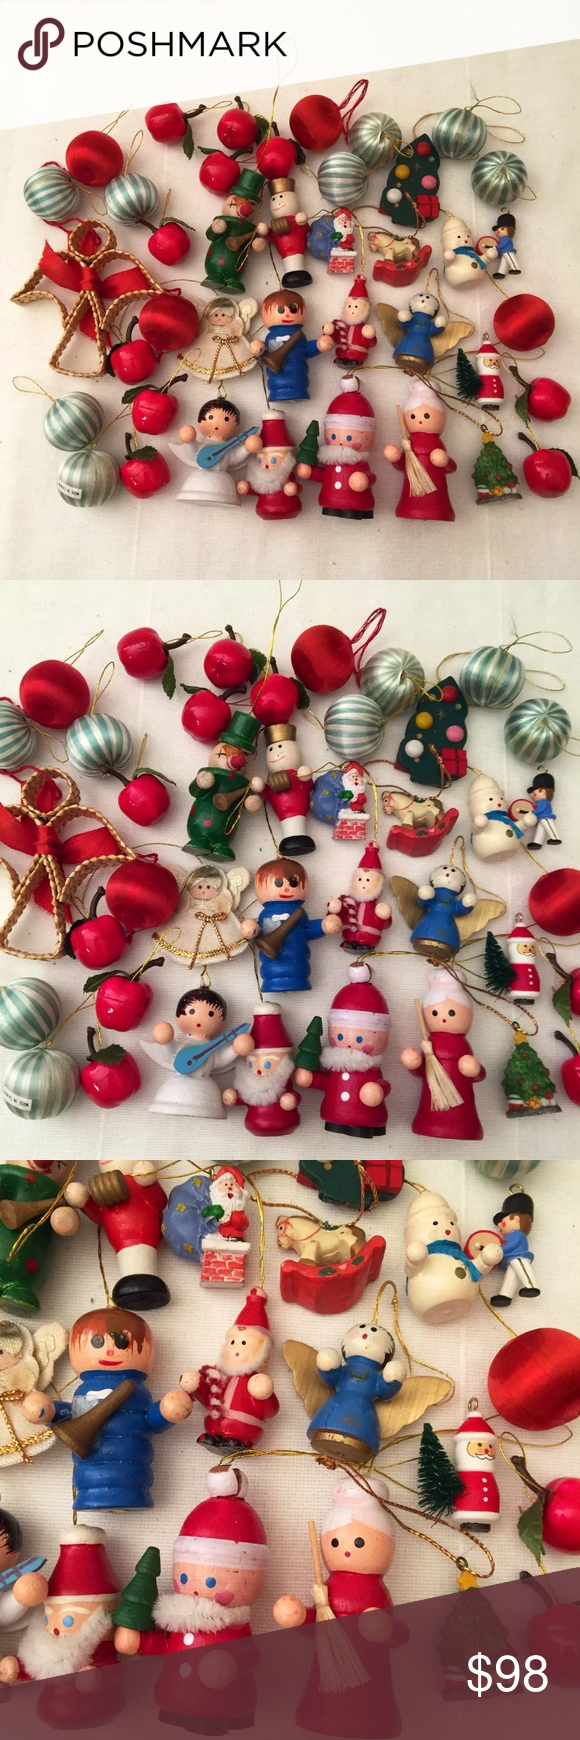 Miniature Vintage Christmas Ornament Lot Retro 60s in 2020